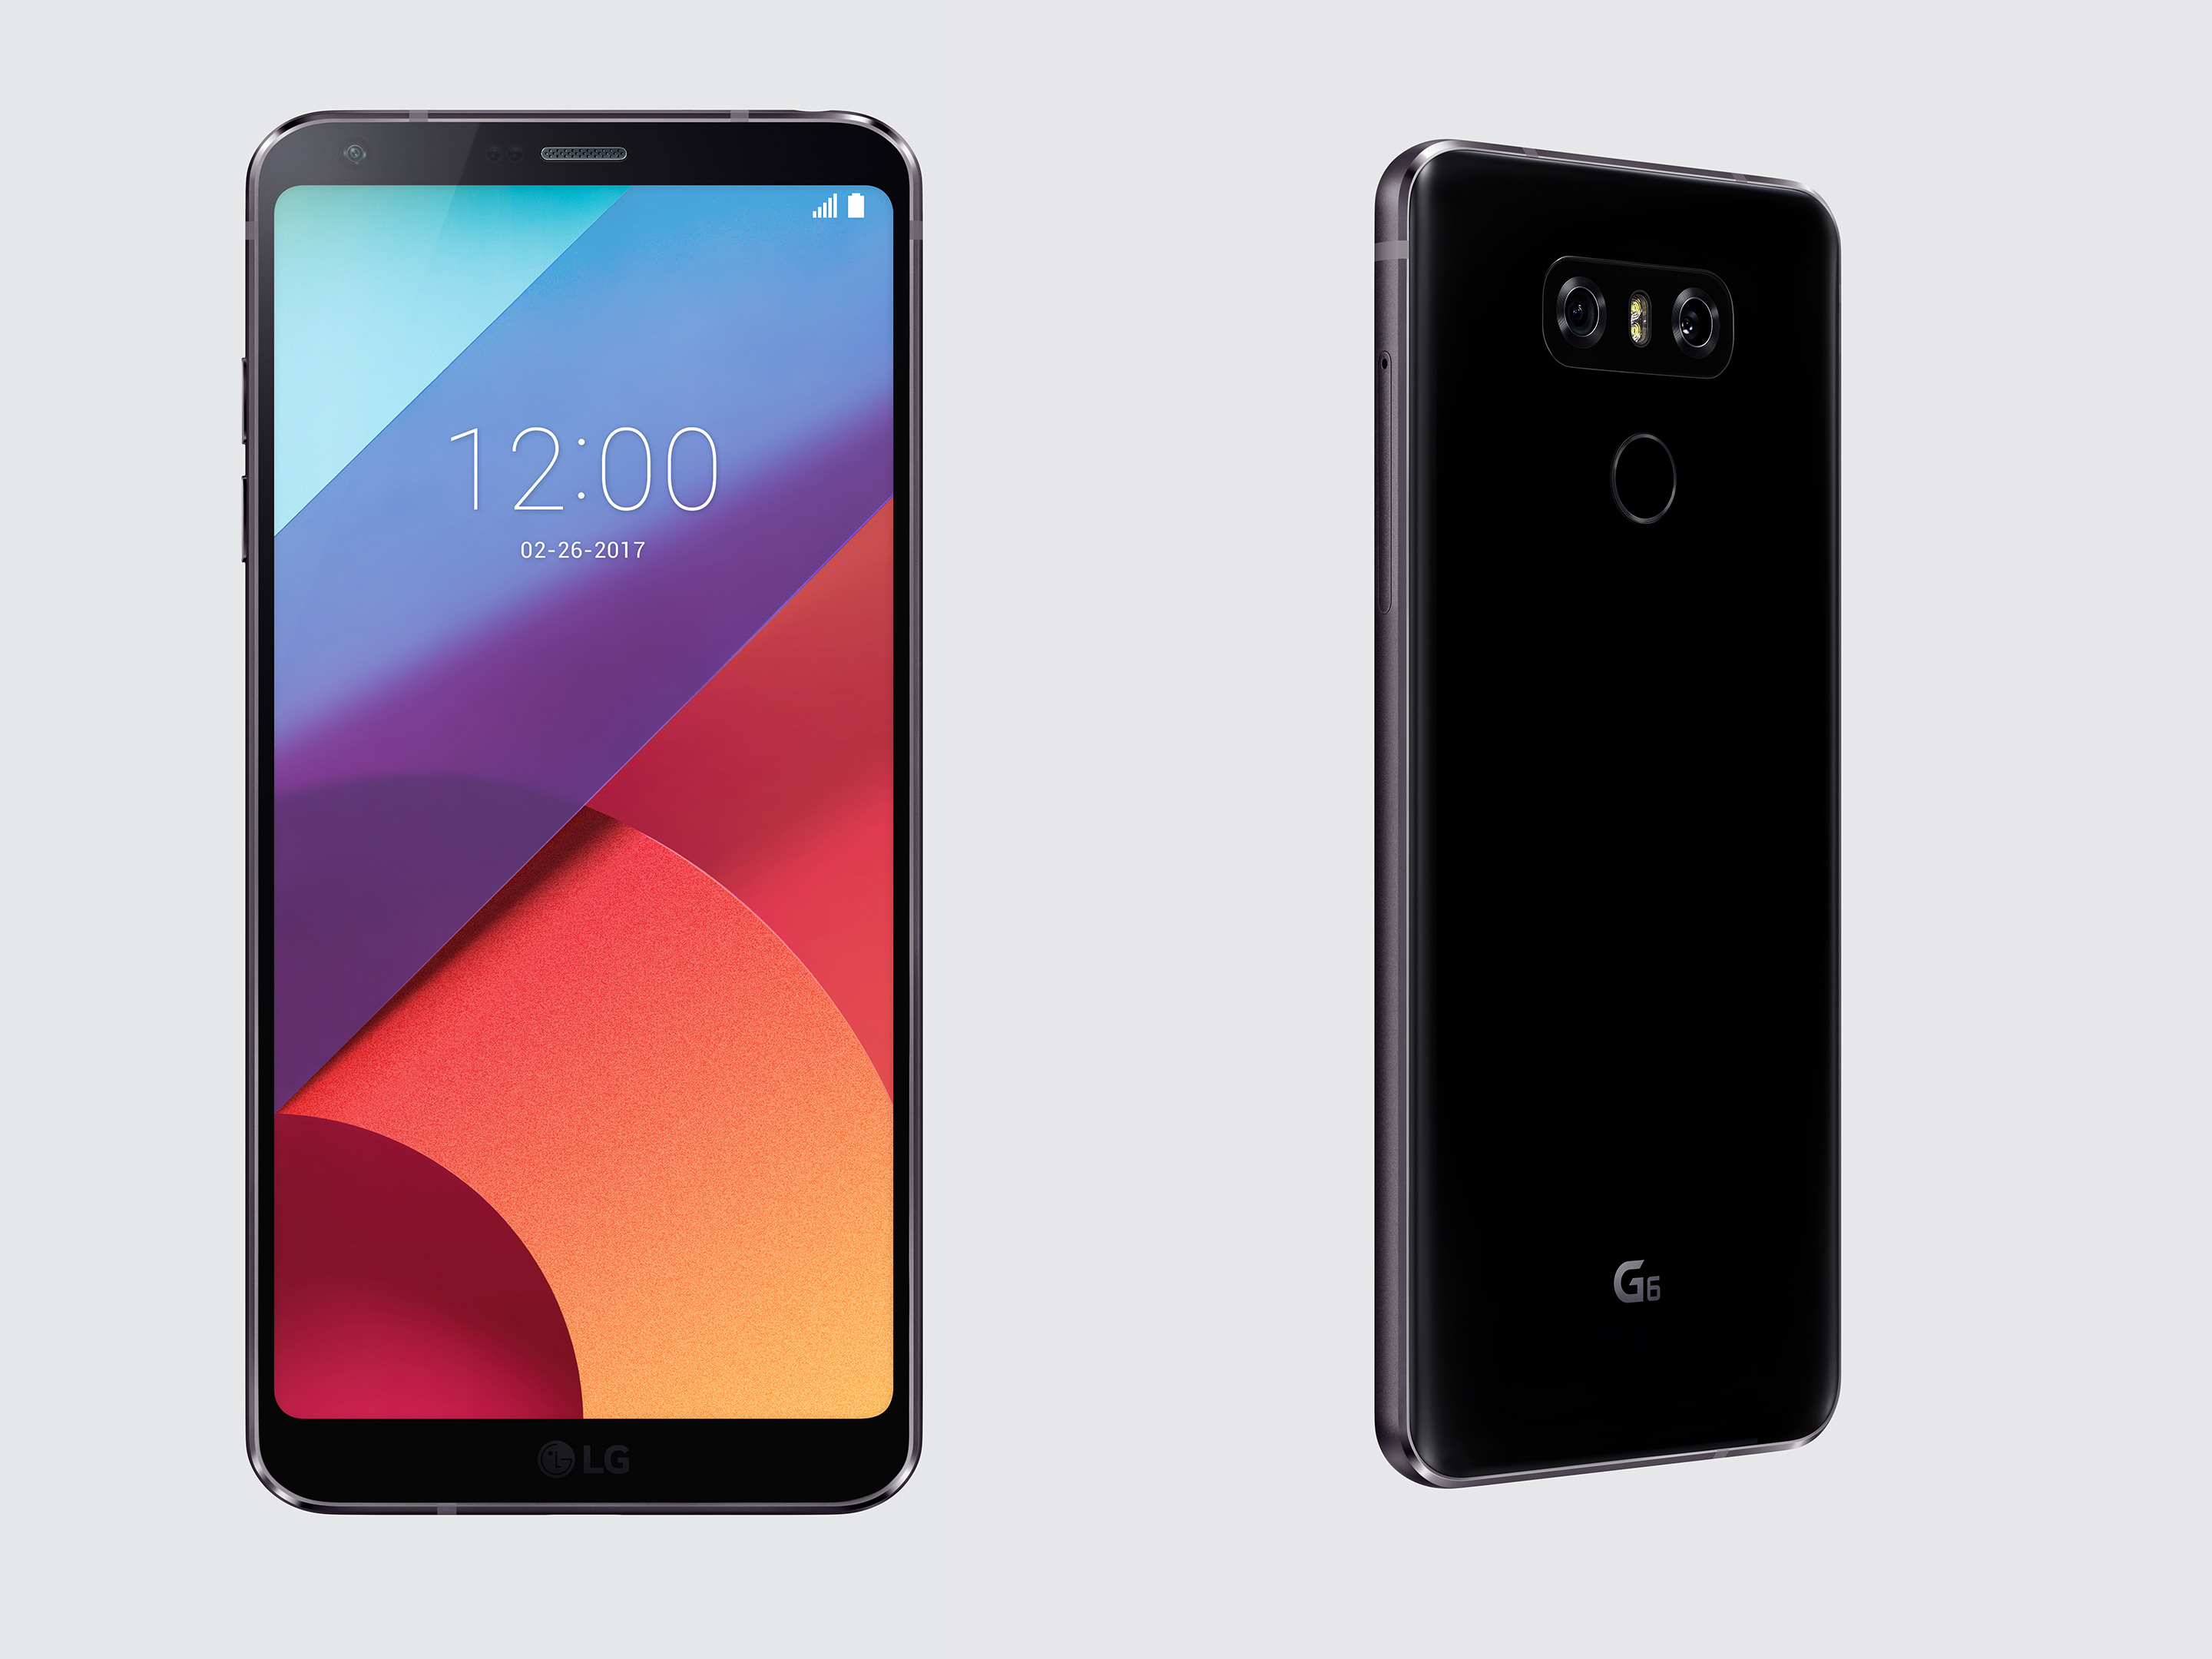 LG G6 high resolution render side view